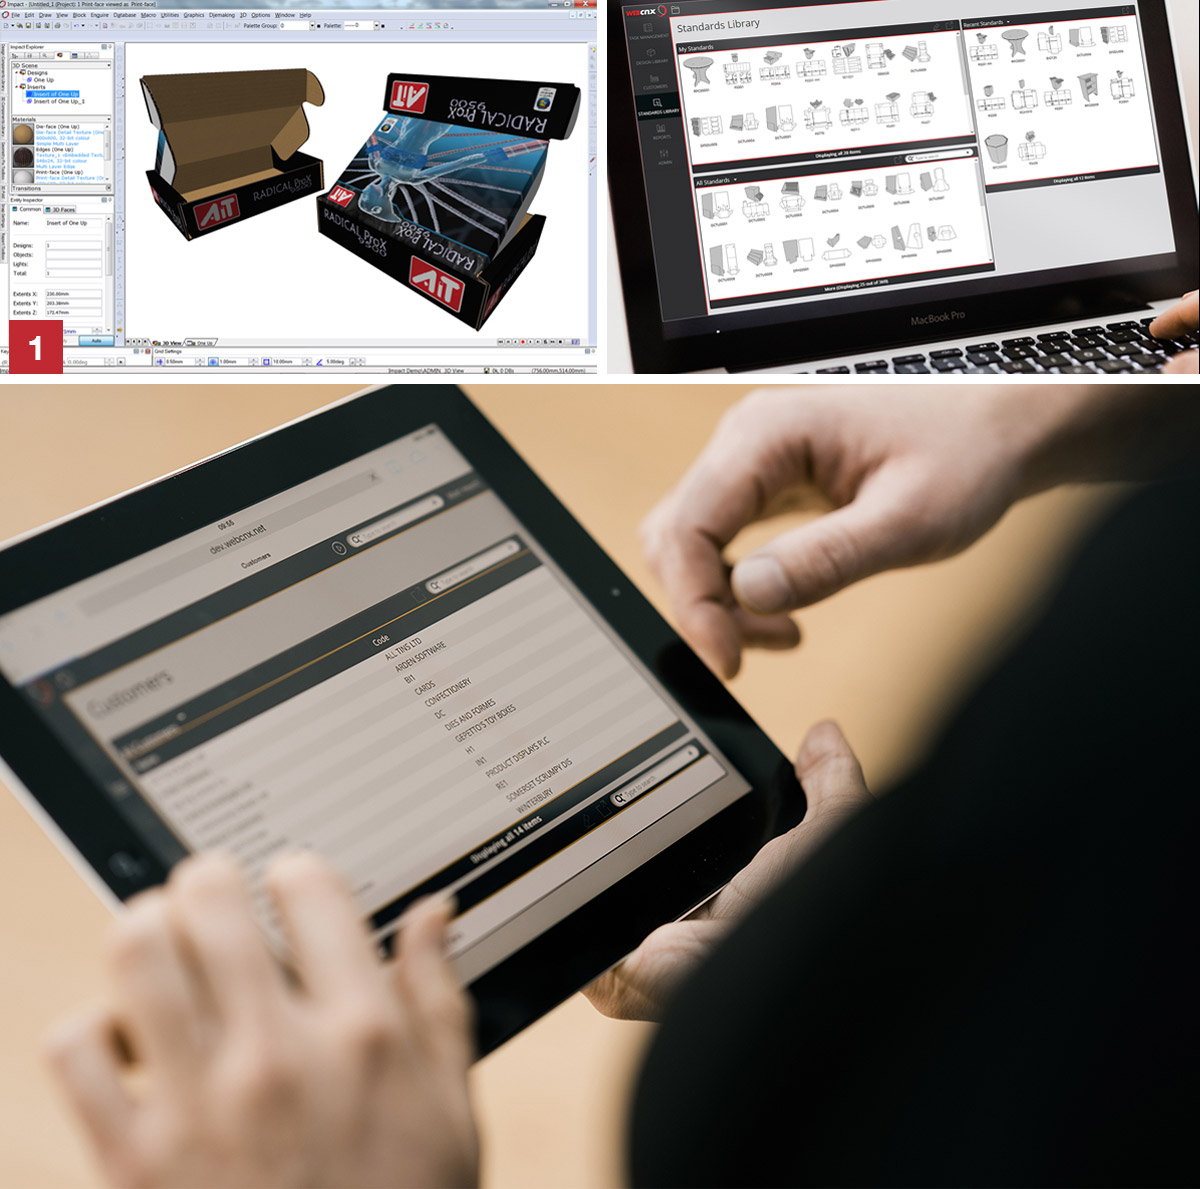 Arden Impact and Enterprise software being used on an iPad and laptop